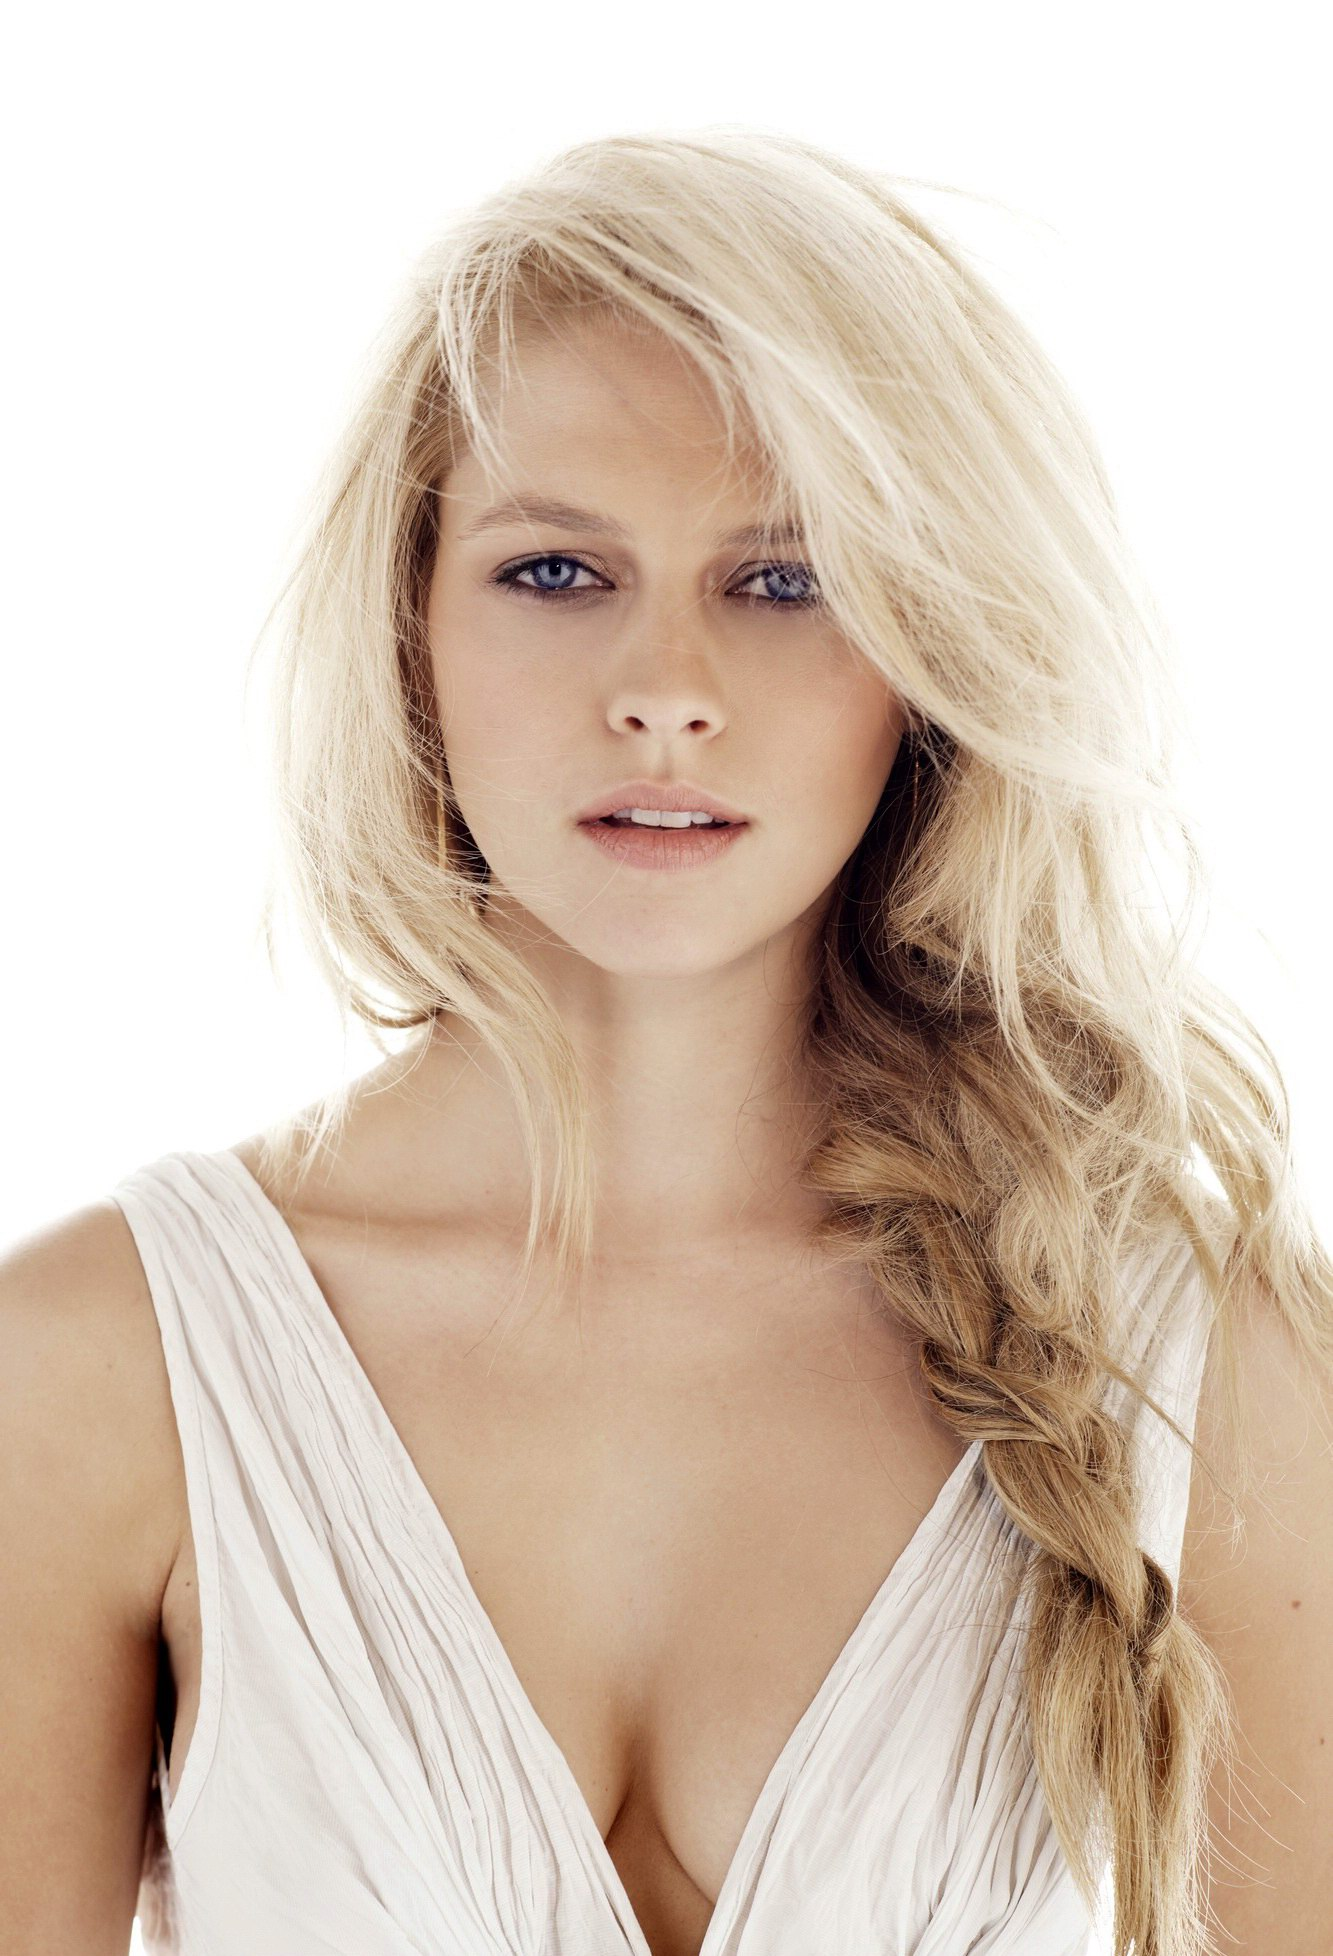 Hd Wallpaper Quotes For Android Teresa Palmer Looking Very Sexy In The Sorcerer S